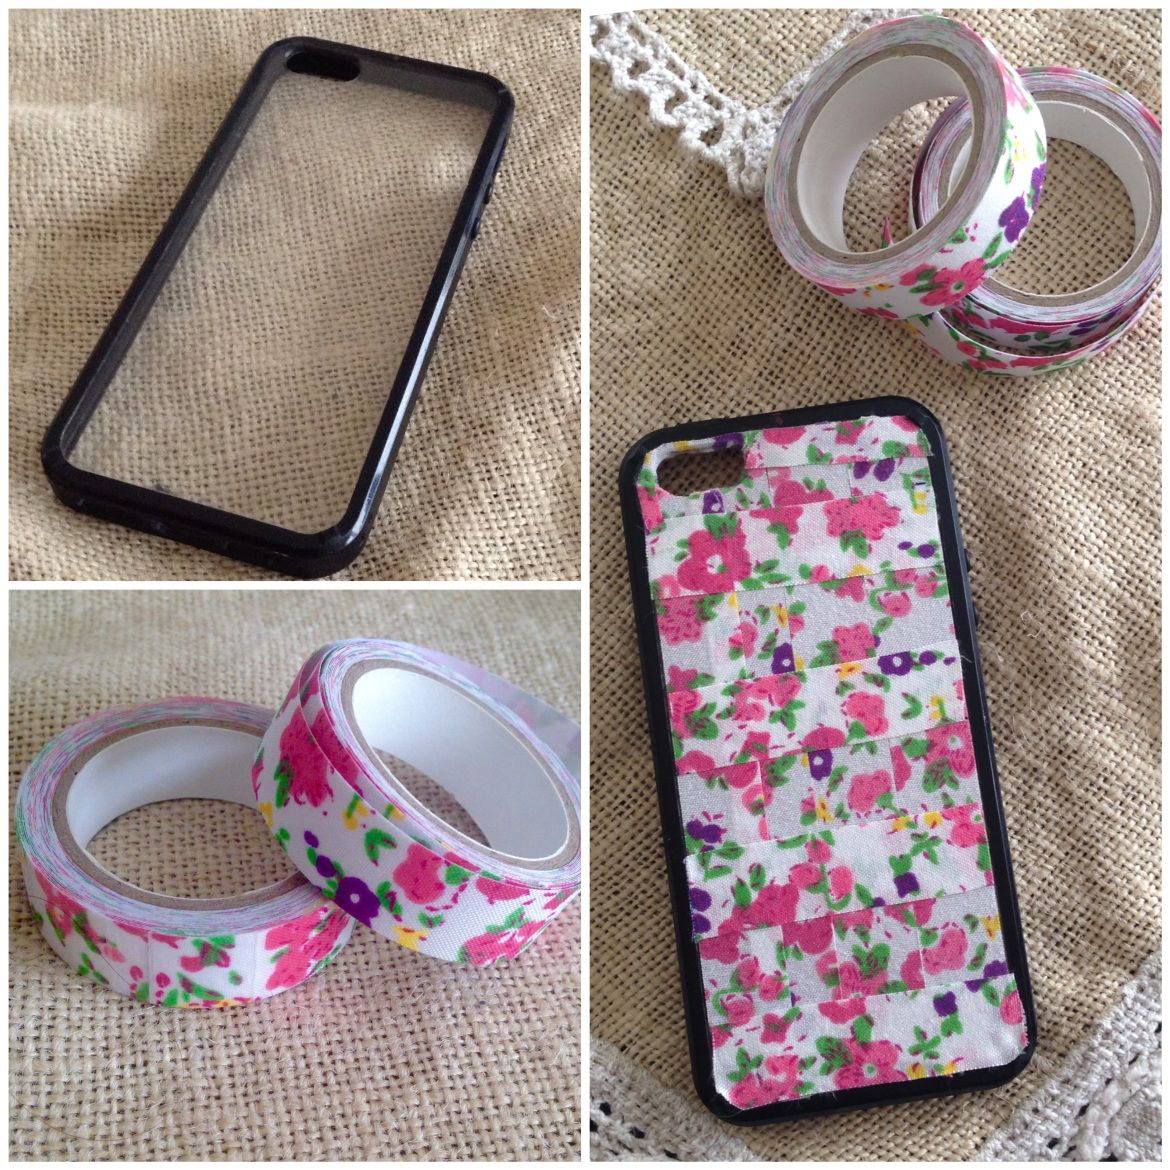 Decorar Fundas De Movil Ideas Con Washitape Carcasa De Celular Personalizada Con